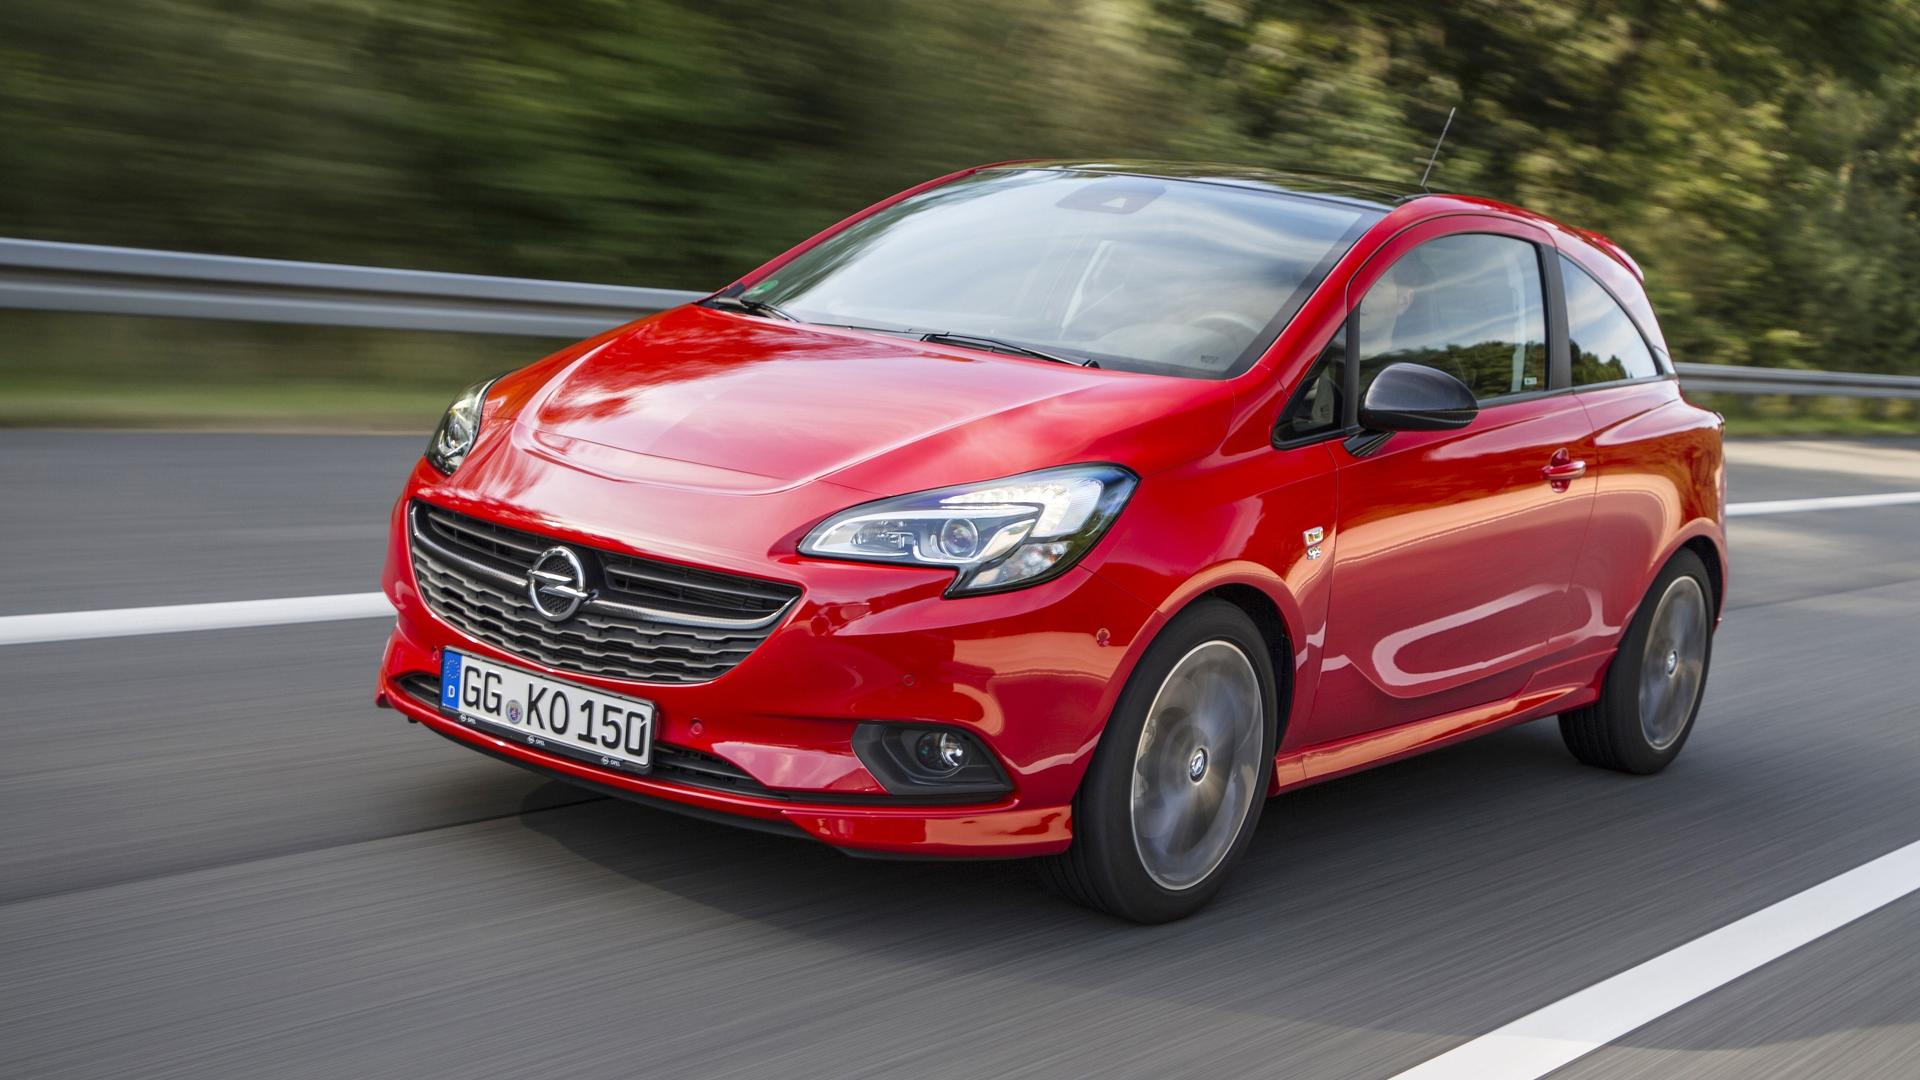 Opel Corsa S Brings Stylish OPC Looks And 150 HP